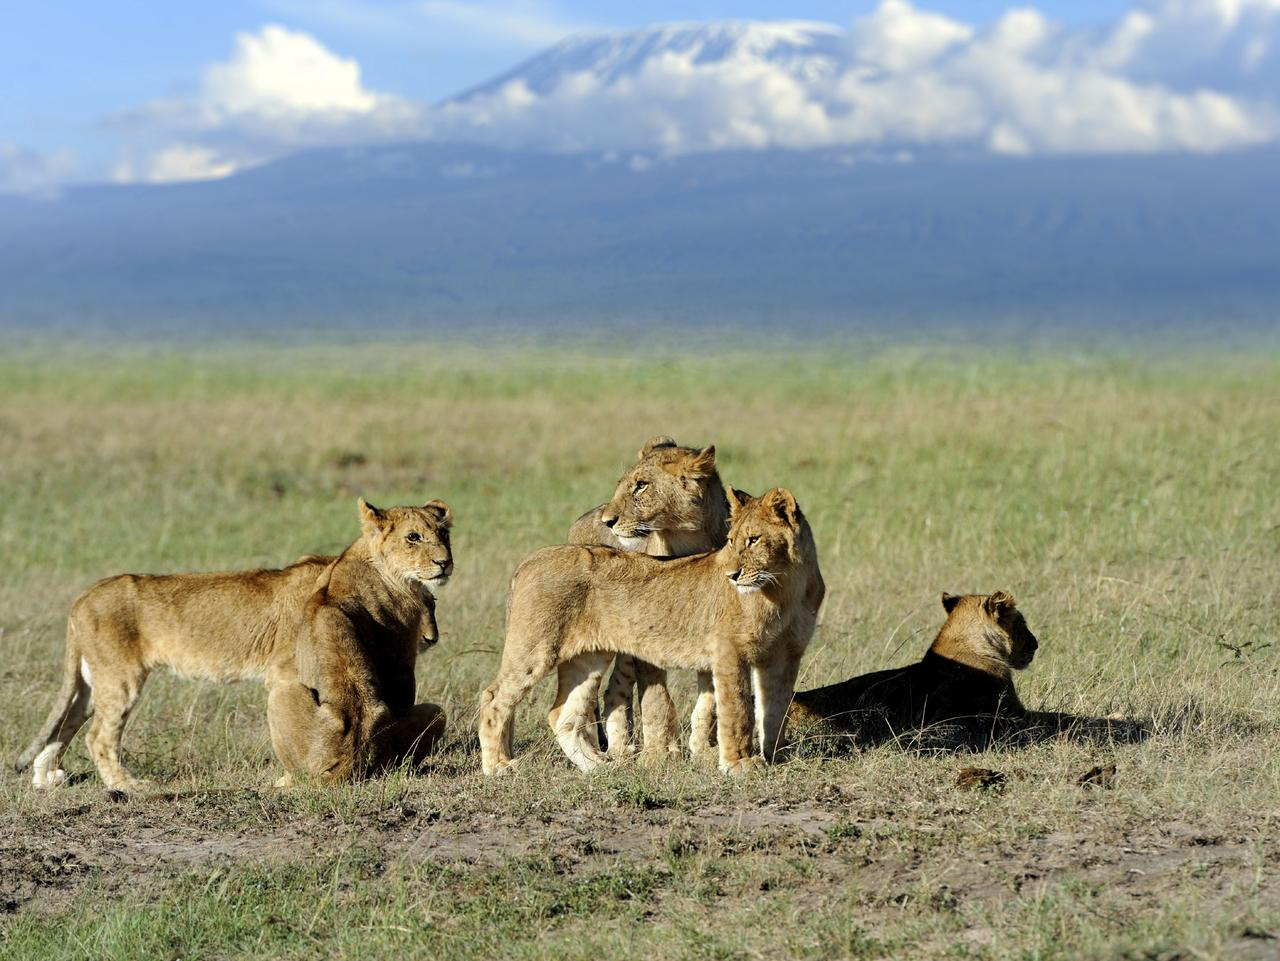 Lions on the savanna with Mount Kilimanjaro in the background. Picture: iStock